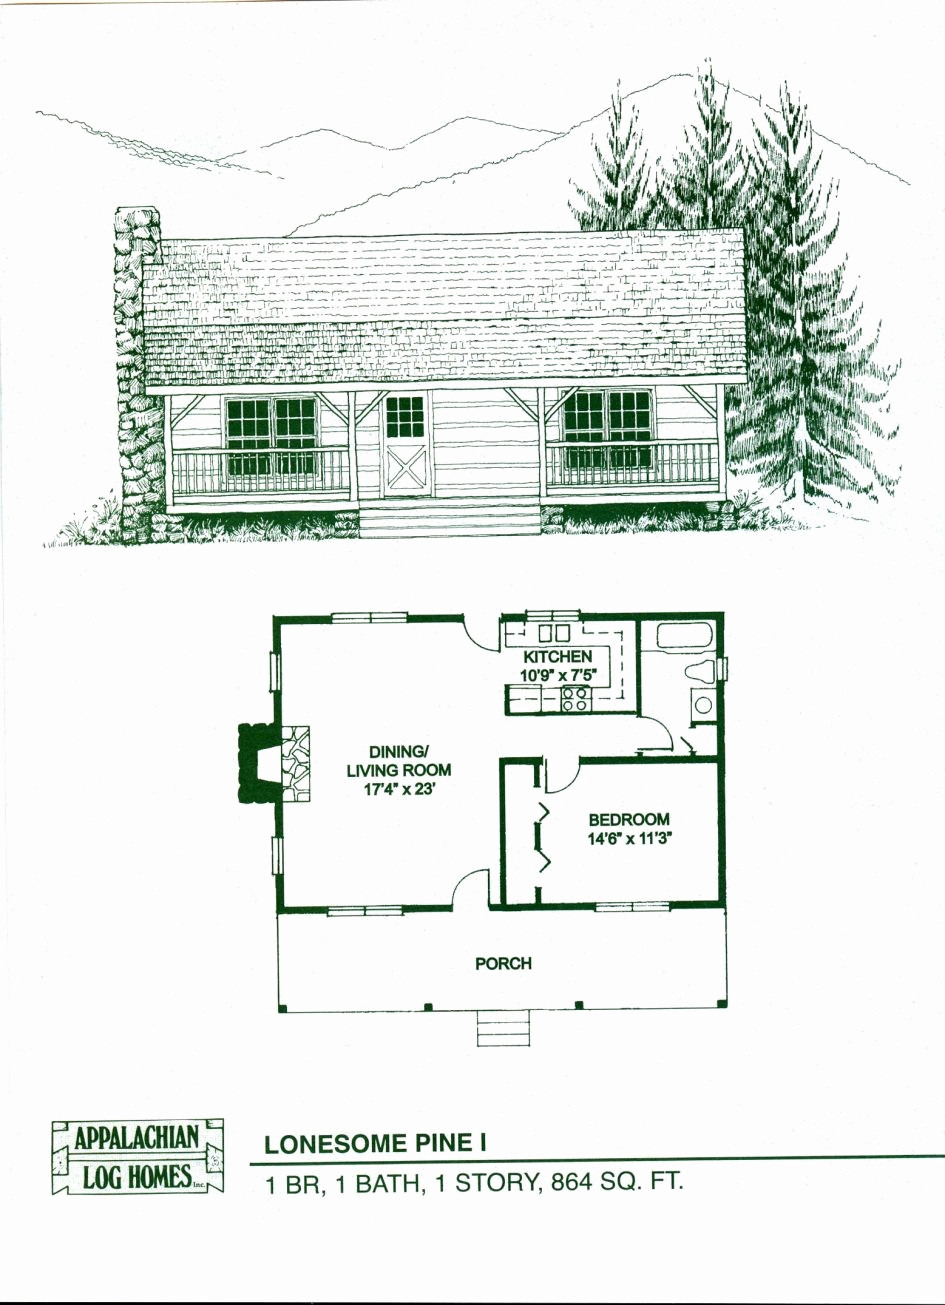 Program for House Plans New Draw Room Layout Free Home and Interior Ideas Easy to Use